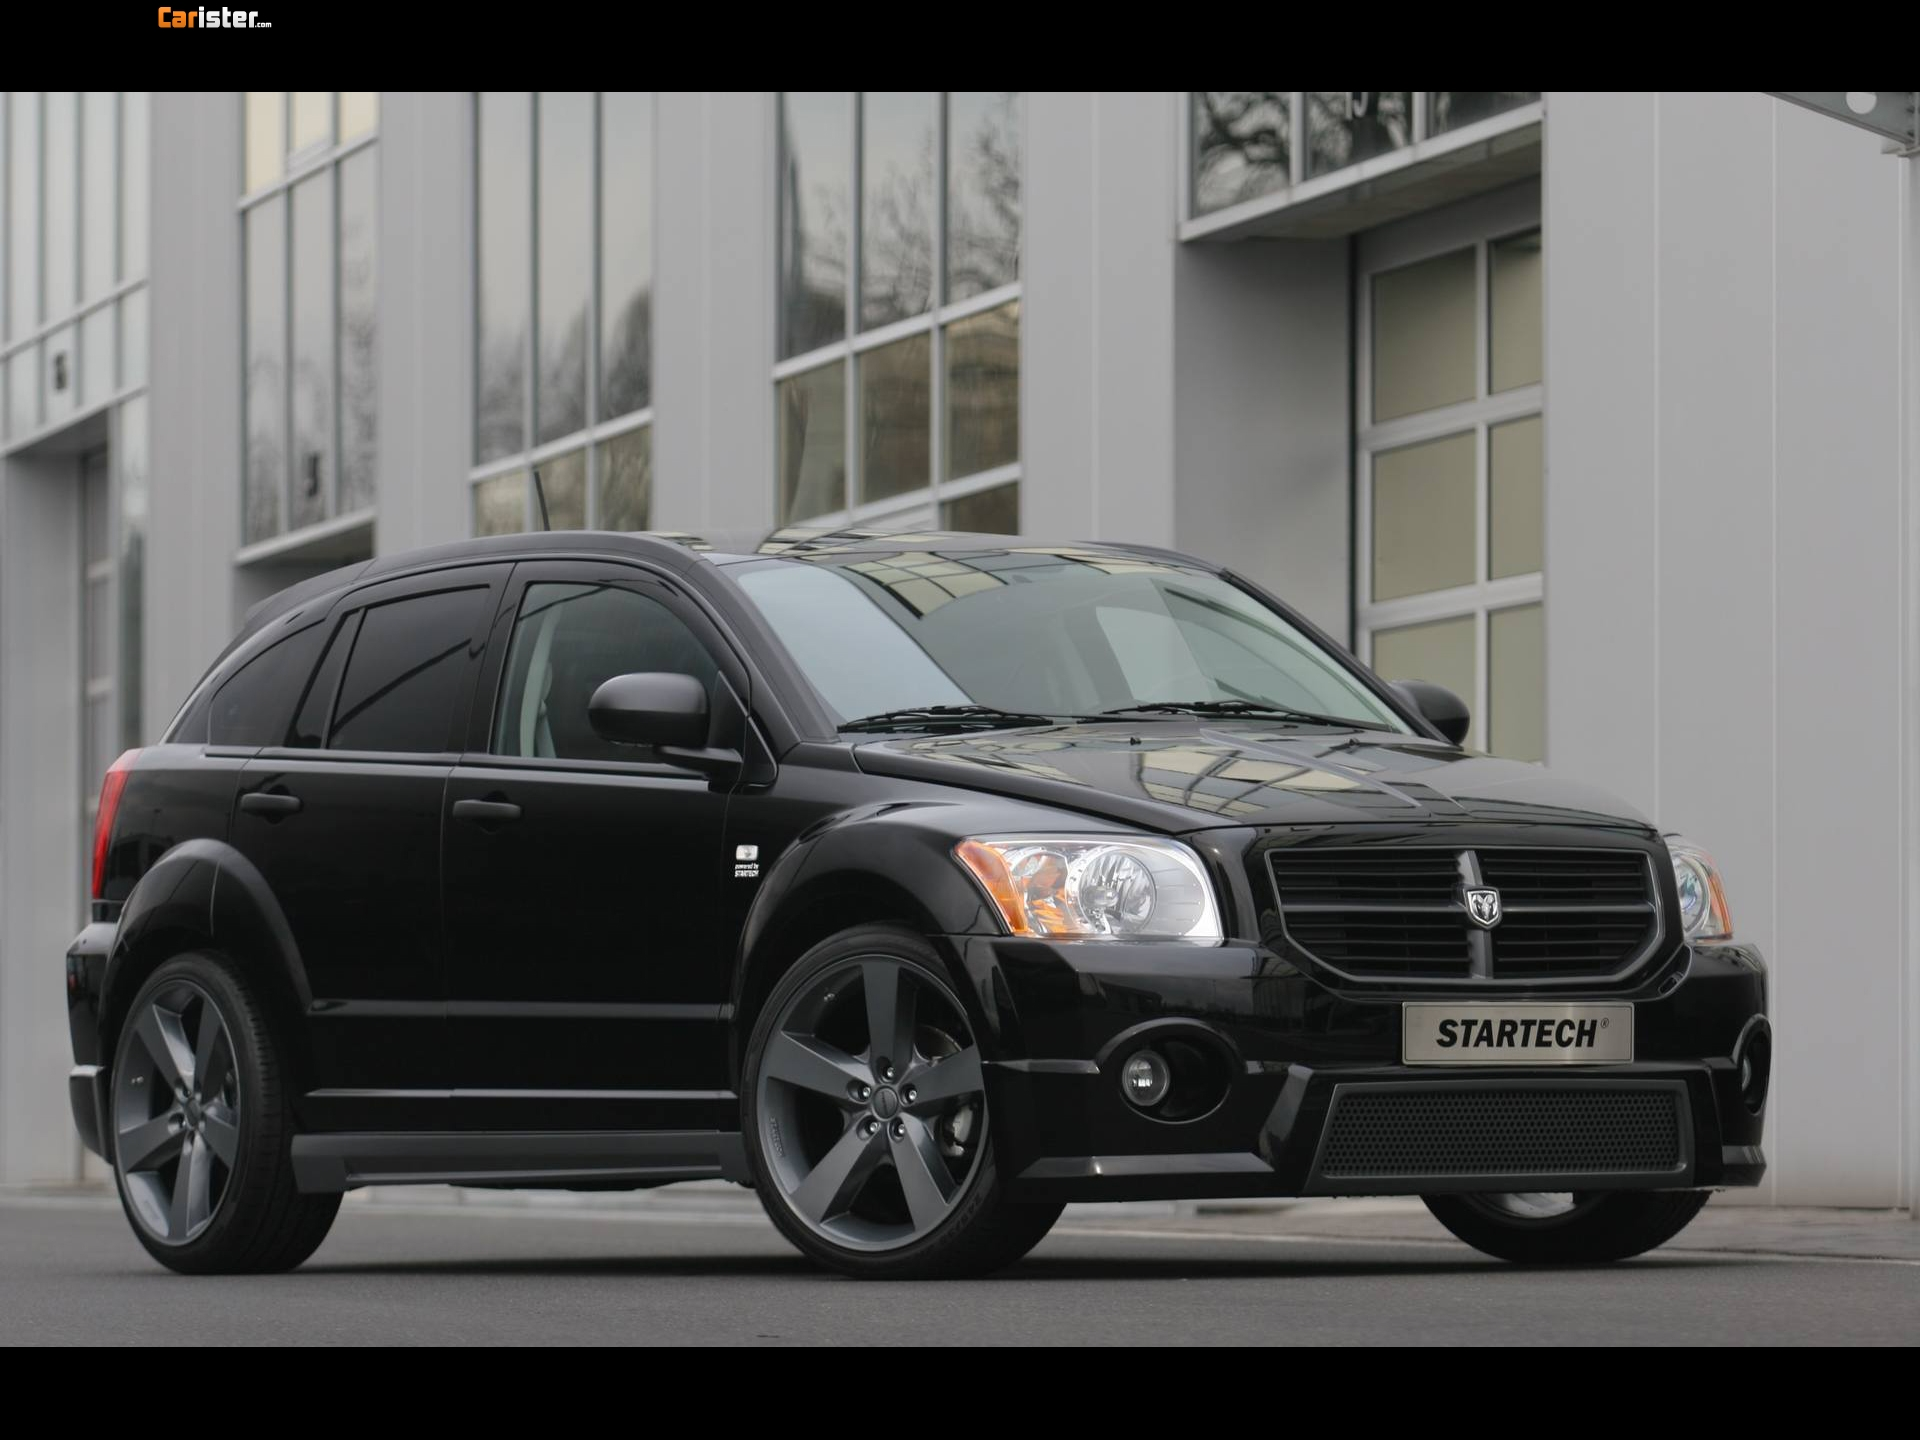 Startech Dodge Caliber 2007 - Photo 01 - Taille: 1920x1440